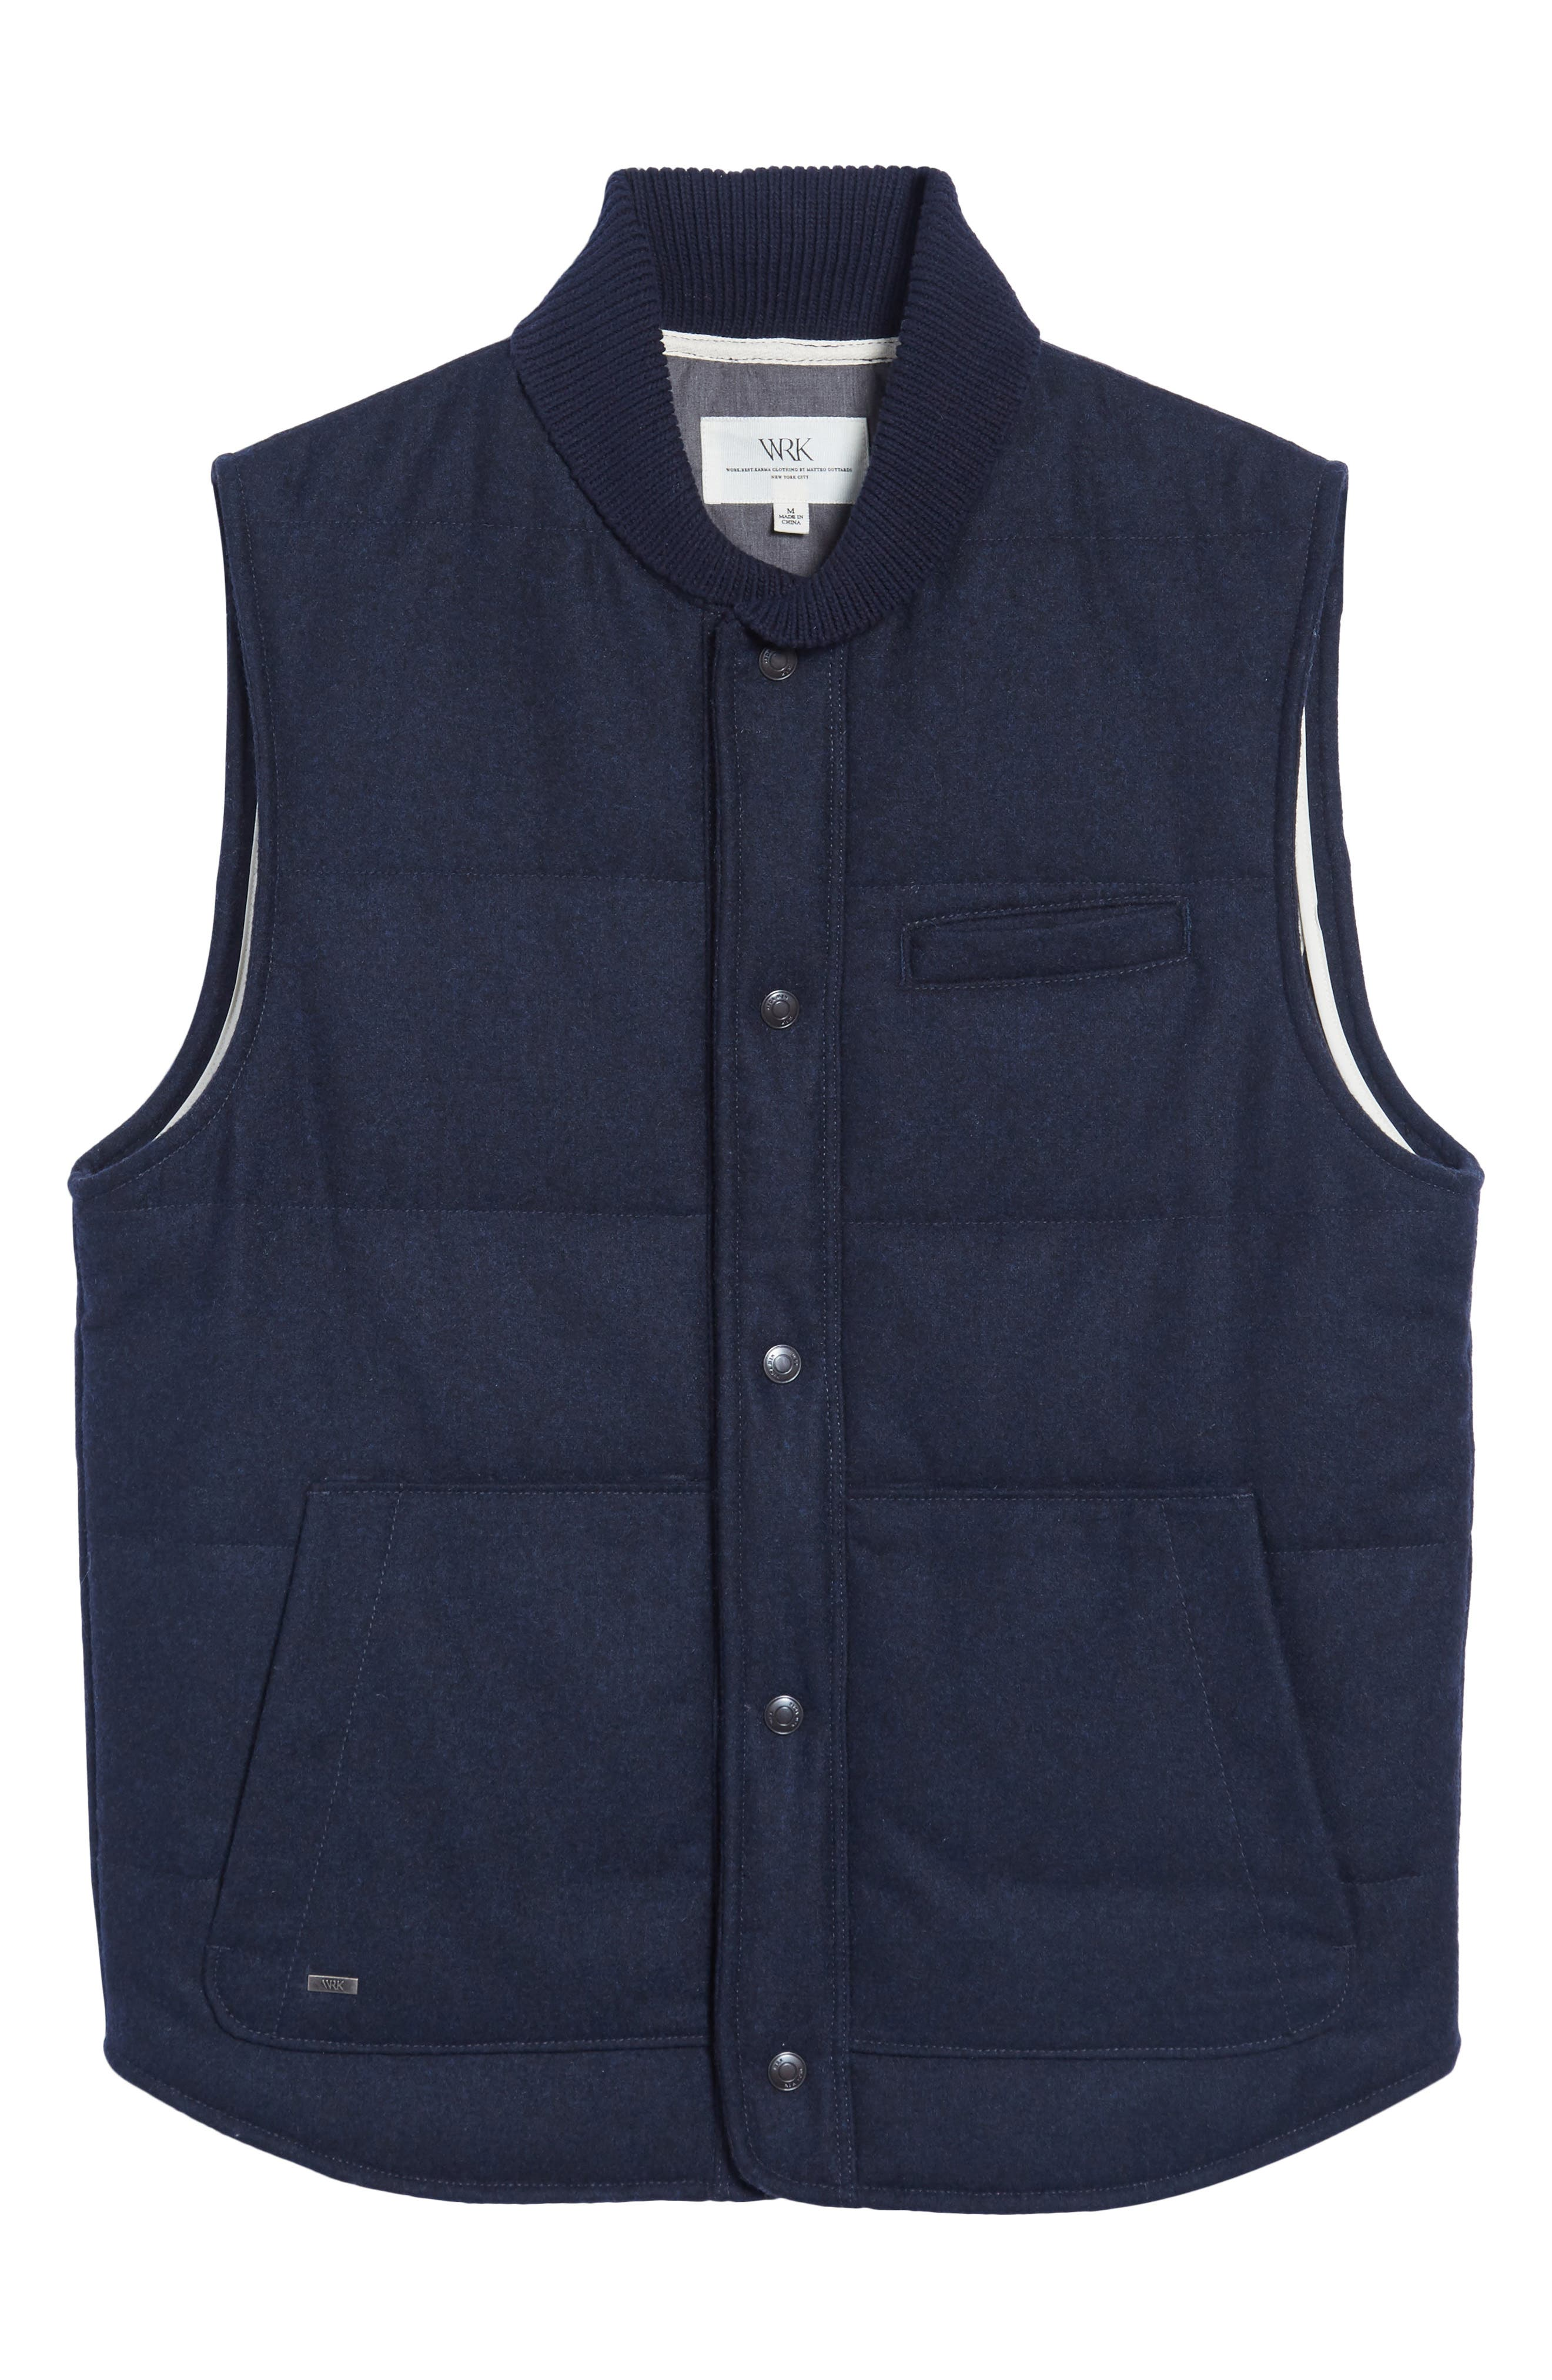 Quilted Work Vest,                             Alternate thumbnail 5, color,                             410